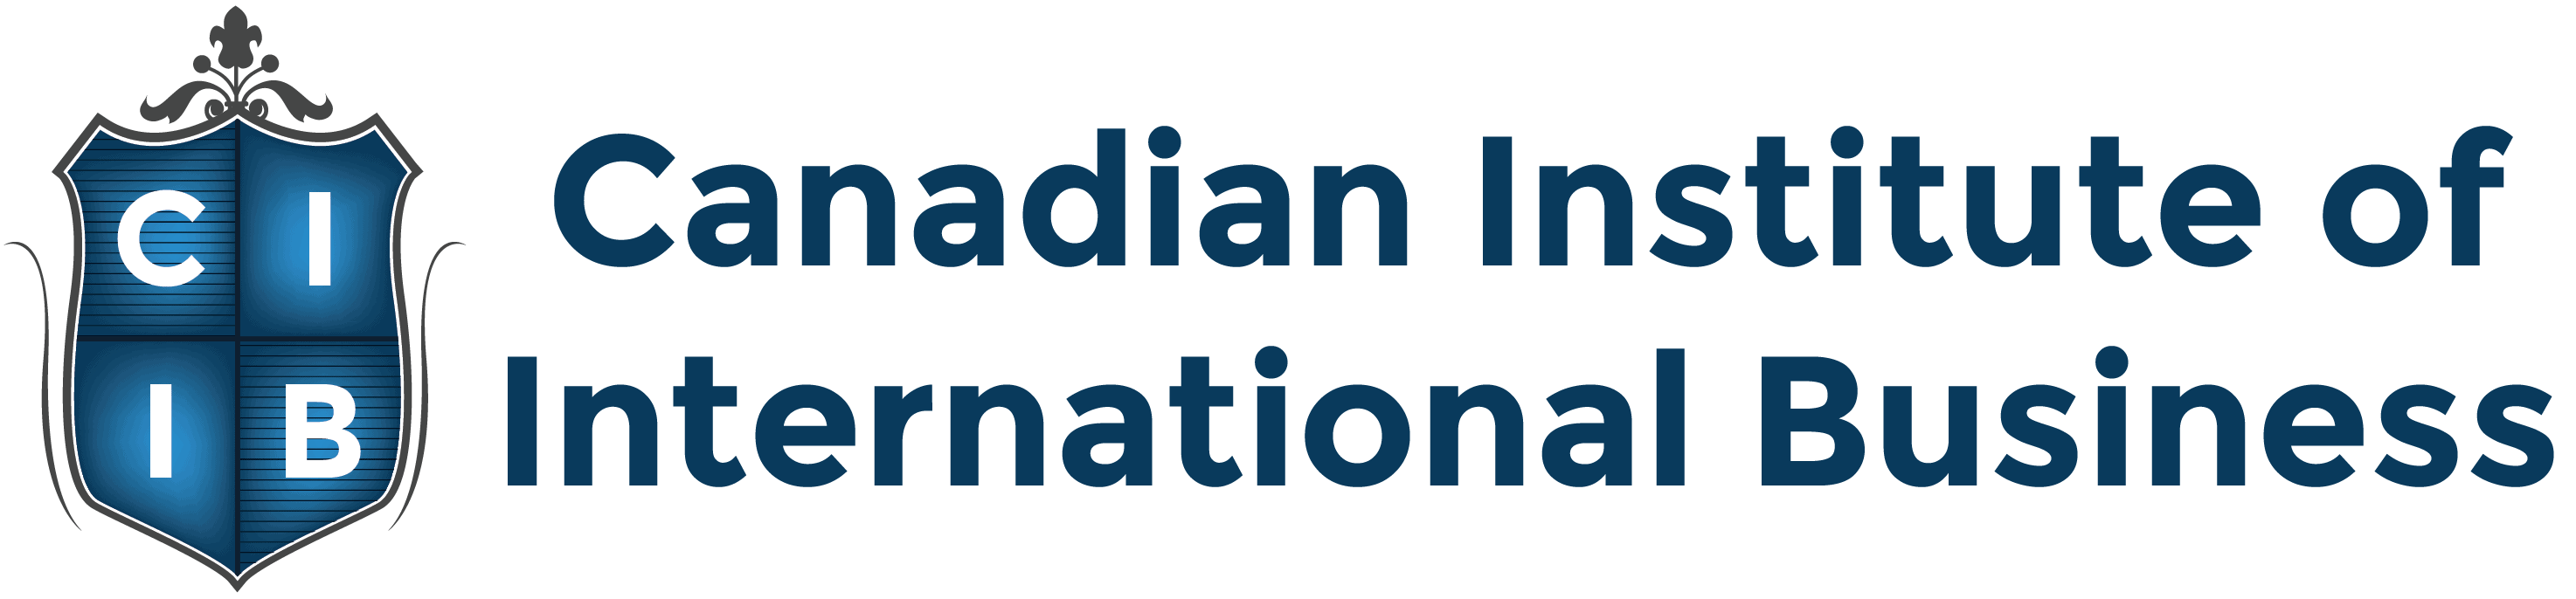 Business and Management Courses at Canadian Institute Of International Business - Better Business Education - Logo